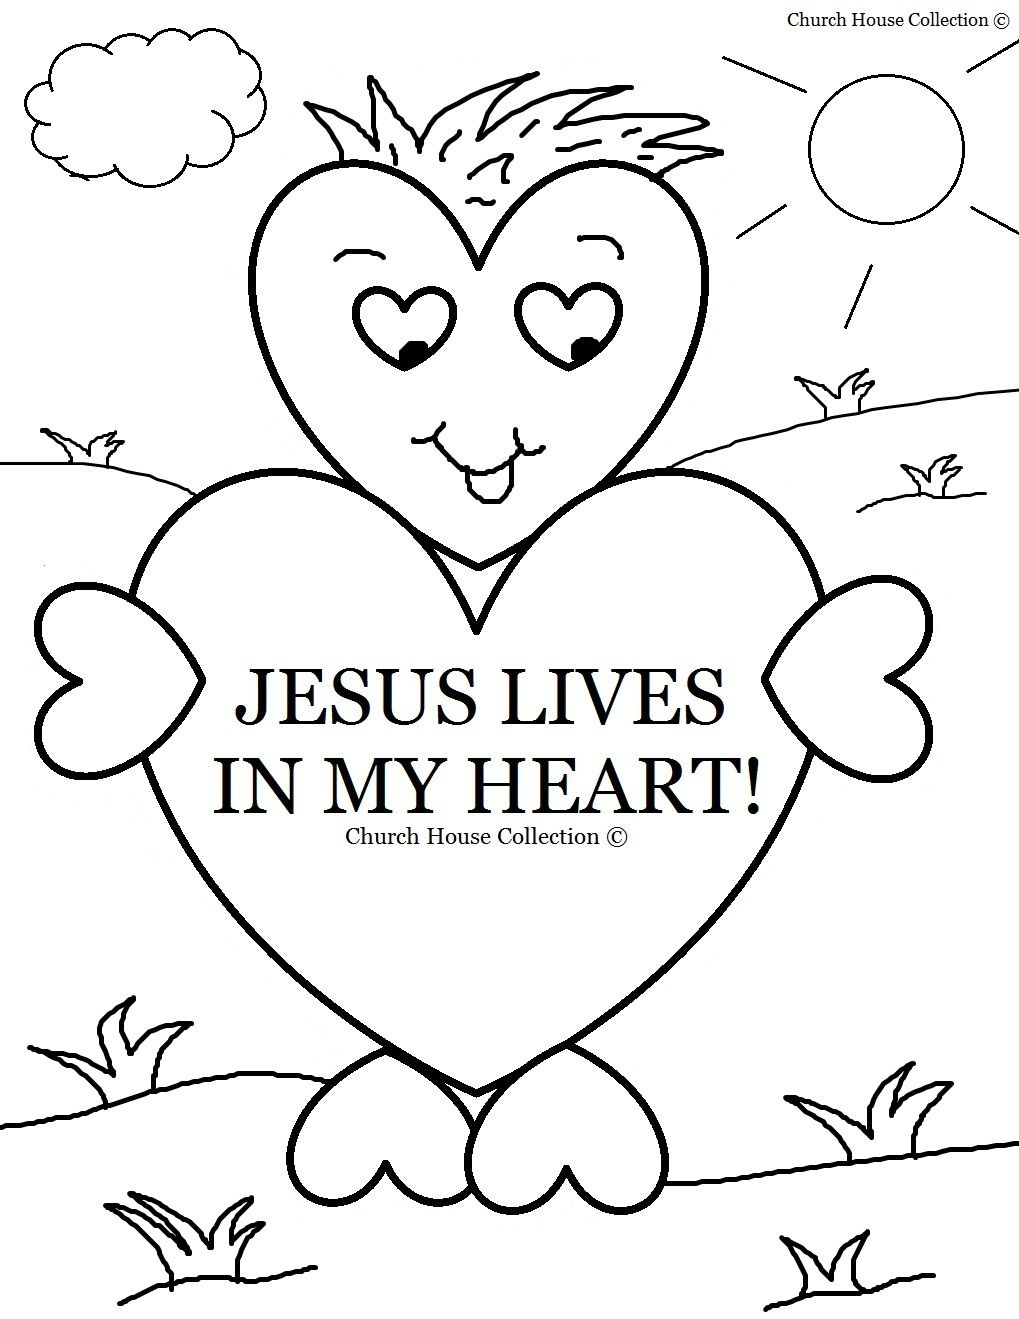 Sunday school coloring pages lives in my heart coloring page for sunday school valentines day